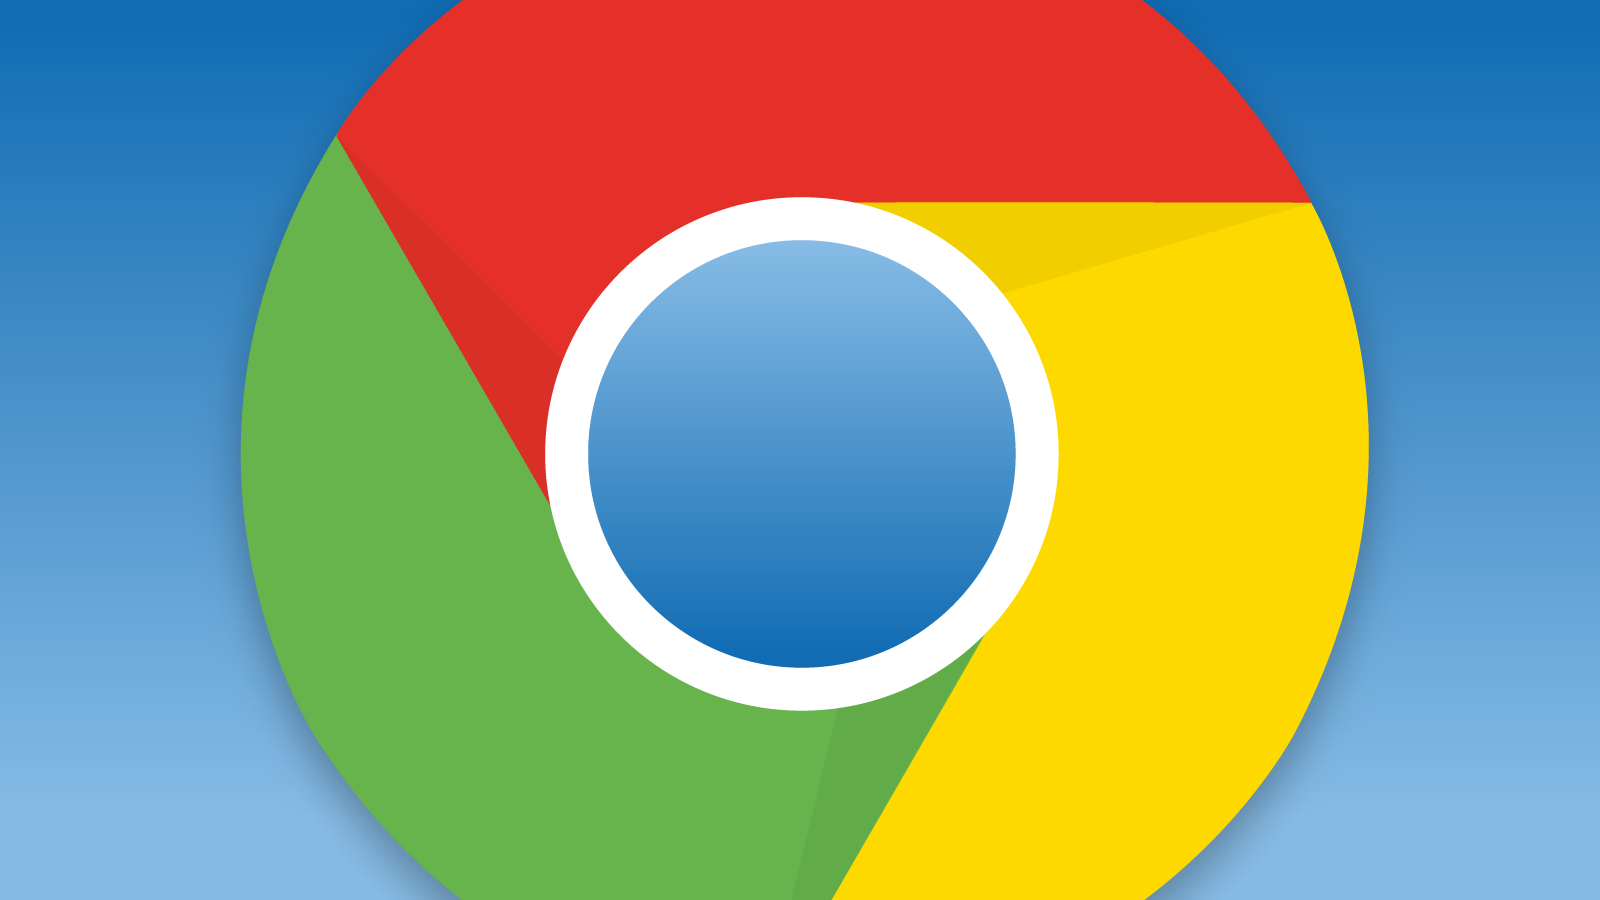 Upcoming versions of Google Chrome will let you permanently